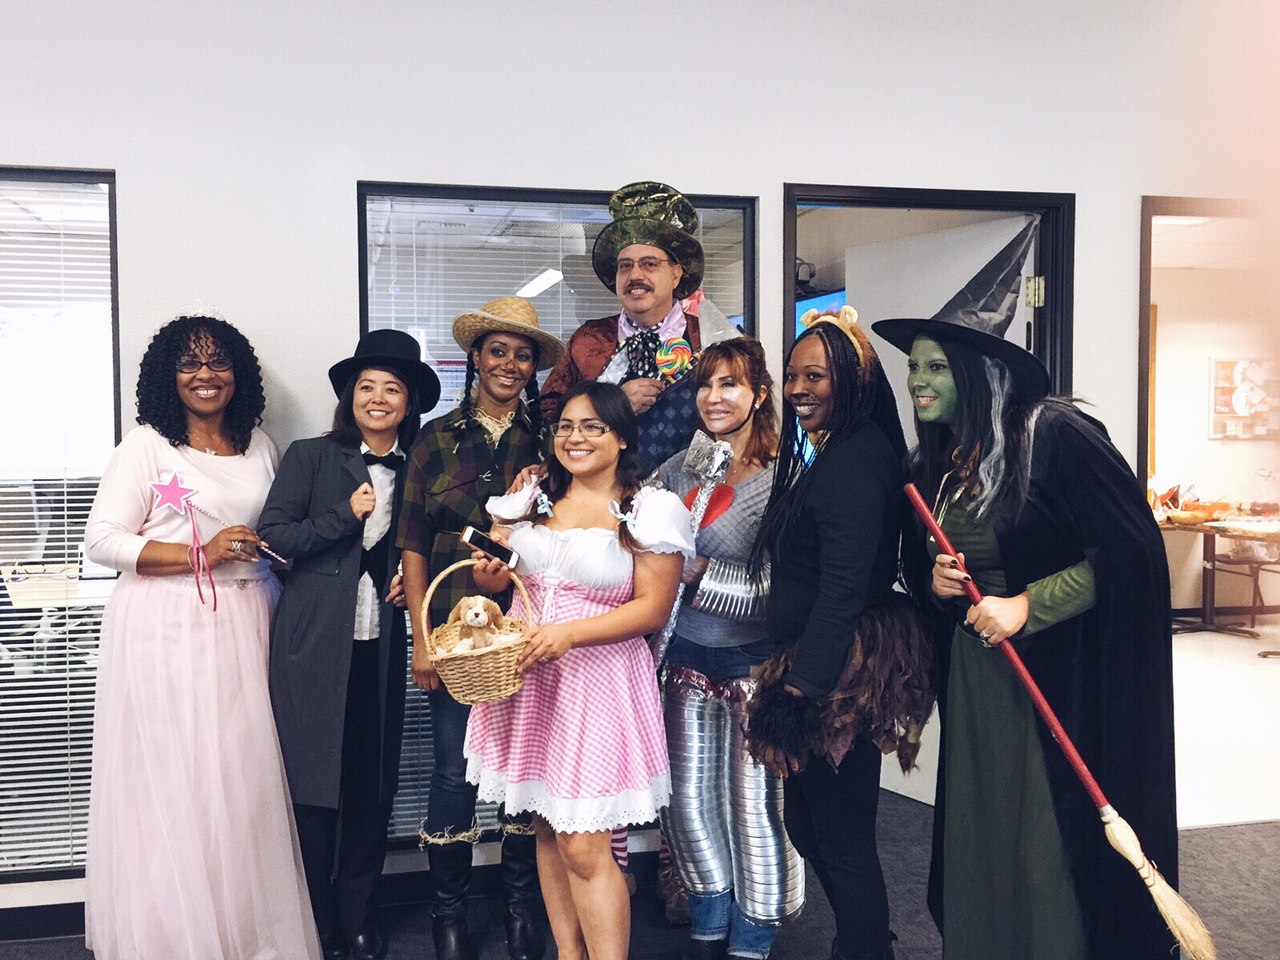 Halloween at work by AS Blog 2016